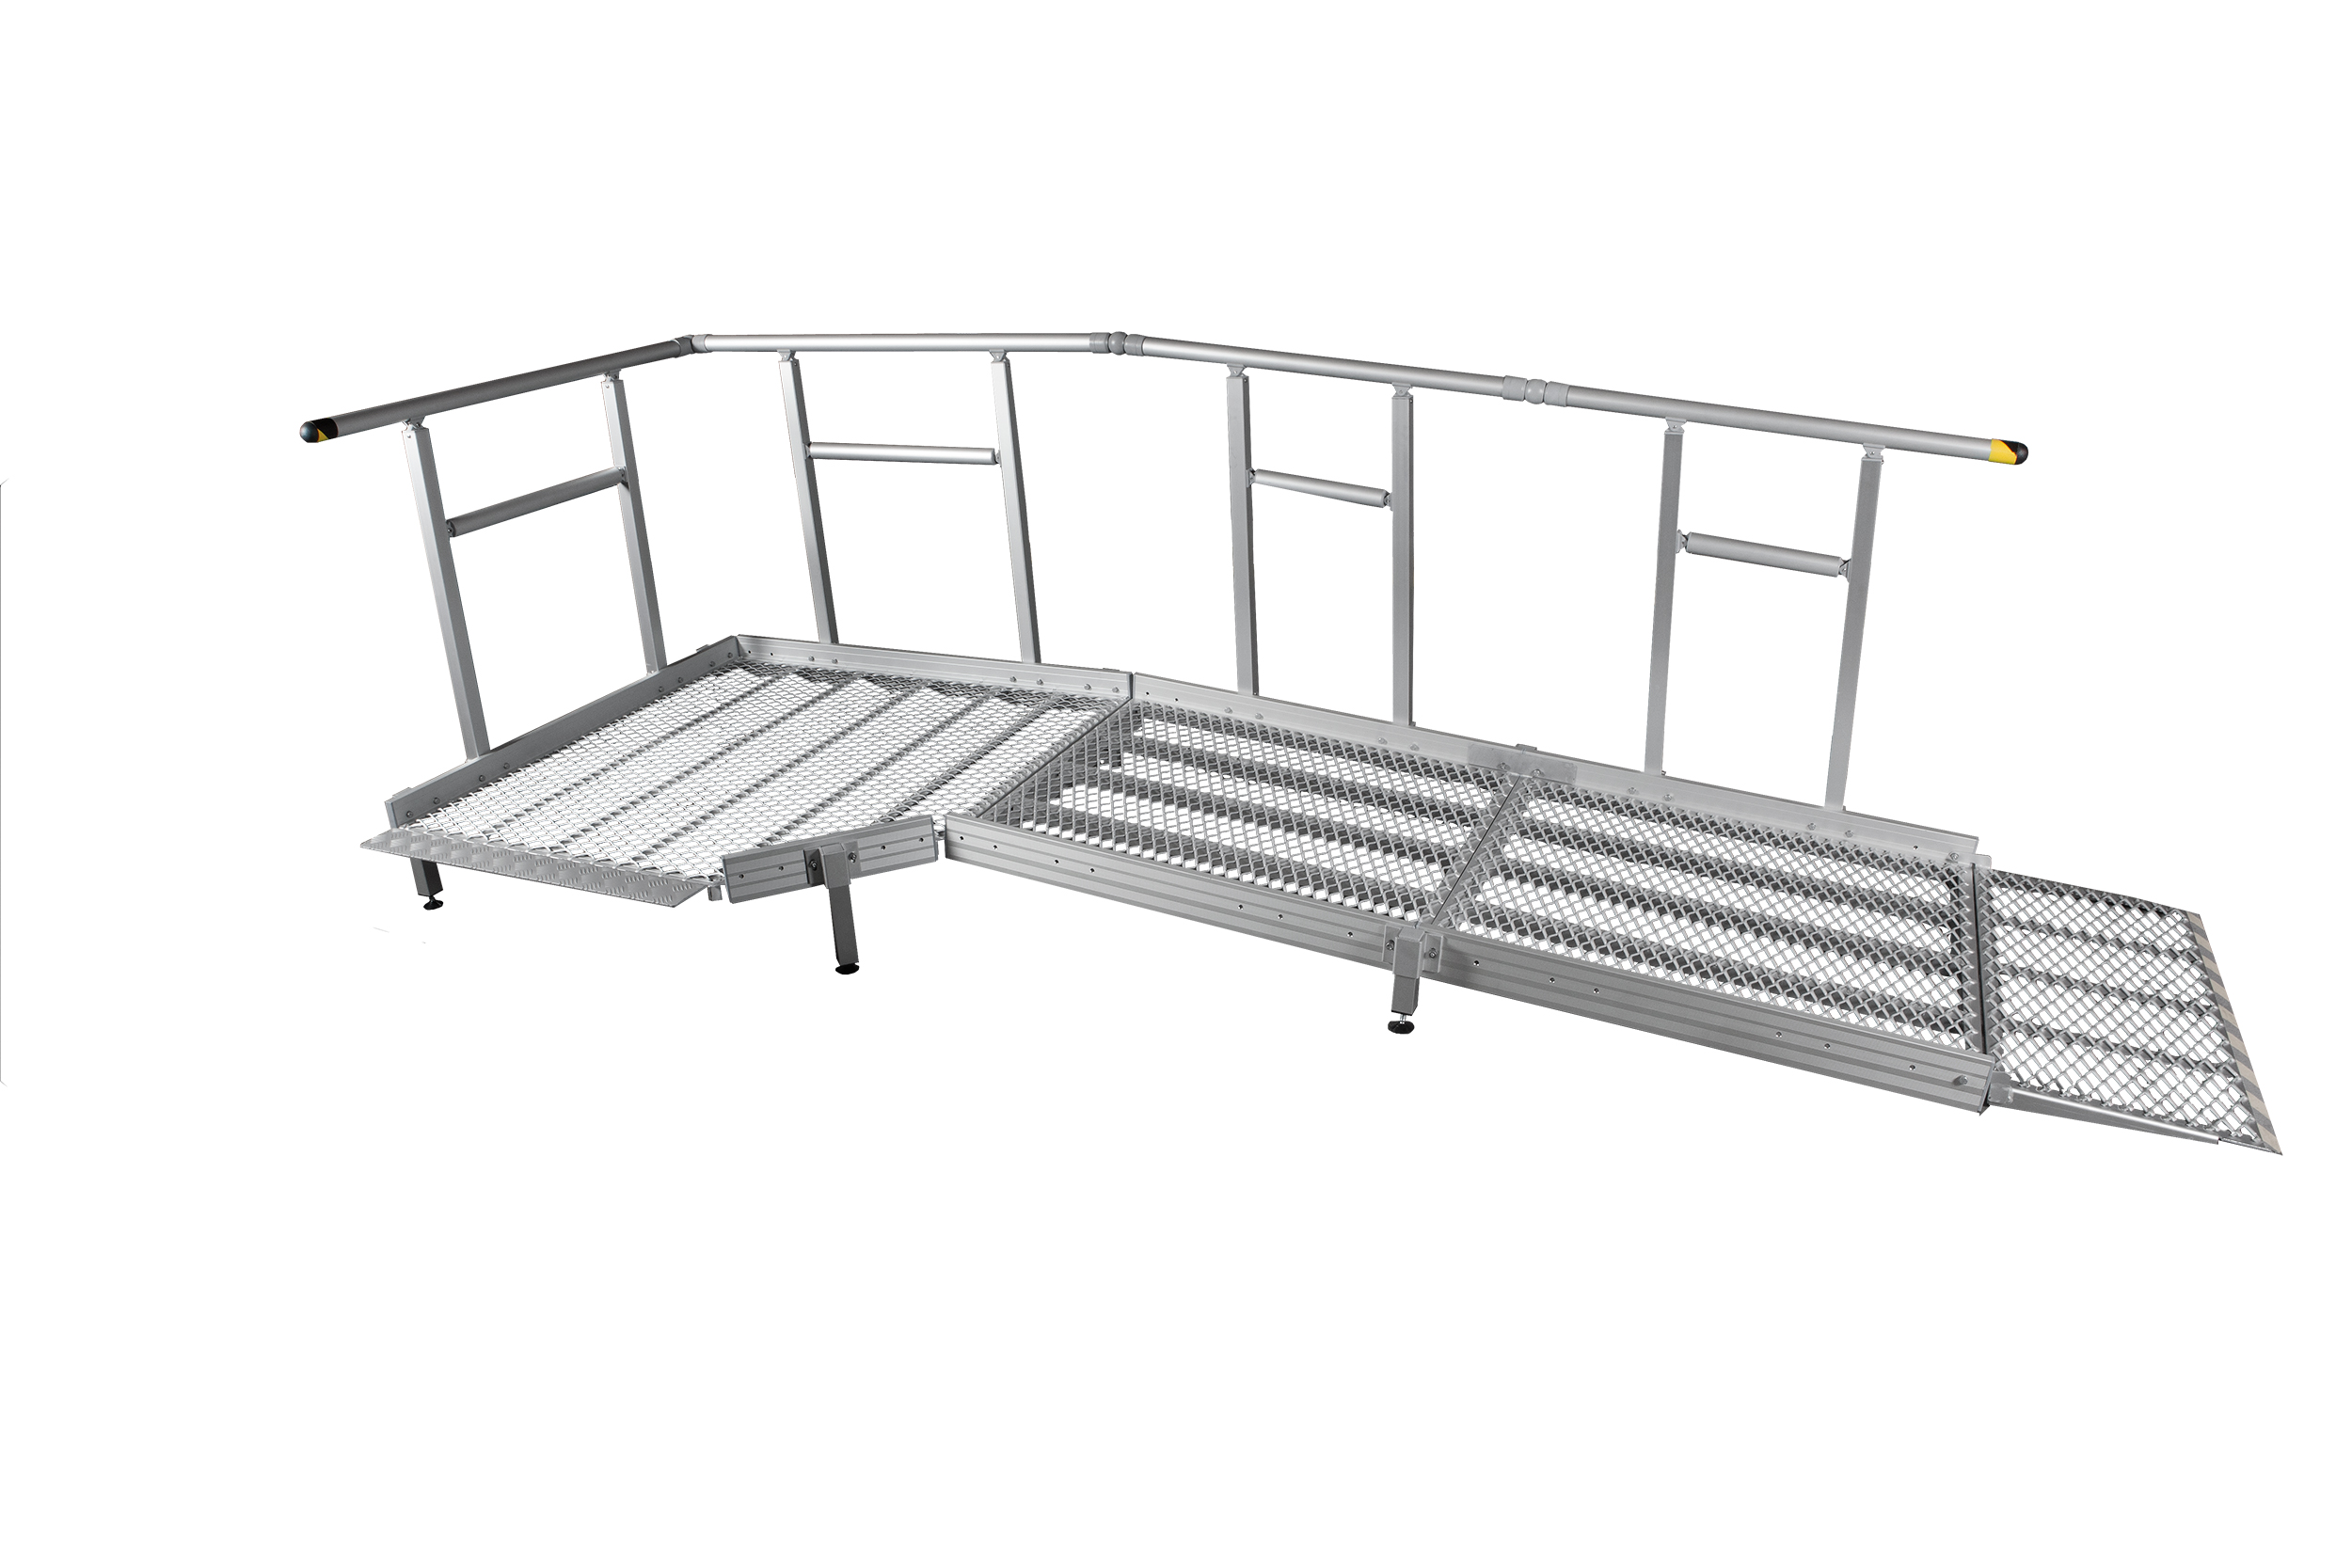 1300mm Wide Ramp system with Handrails